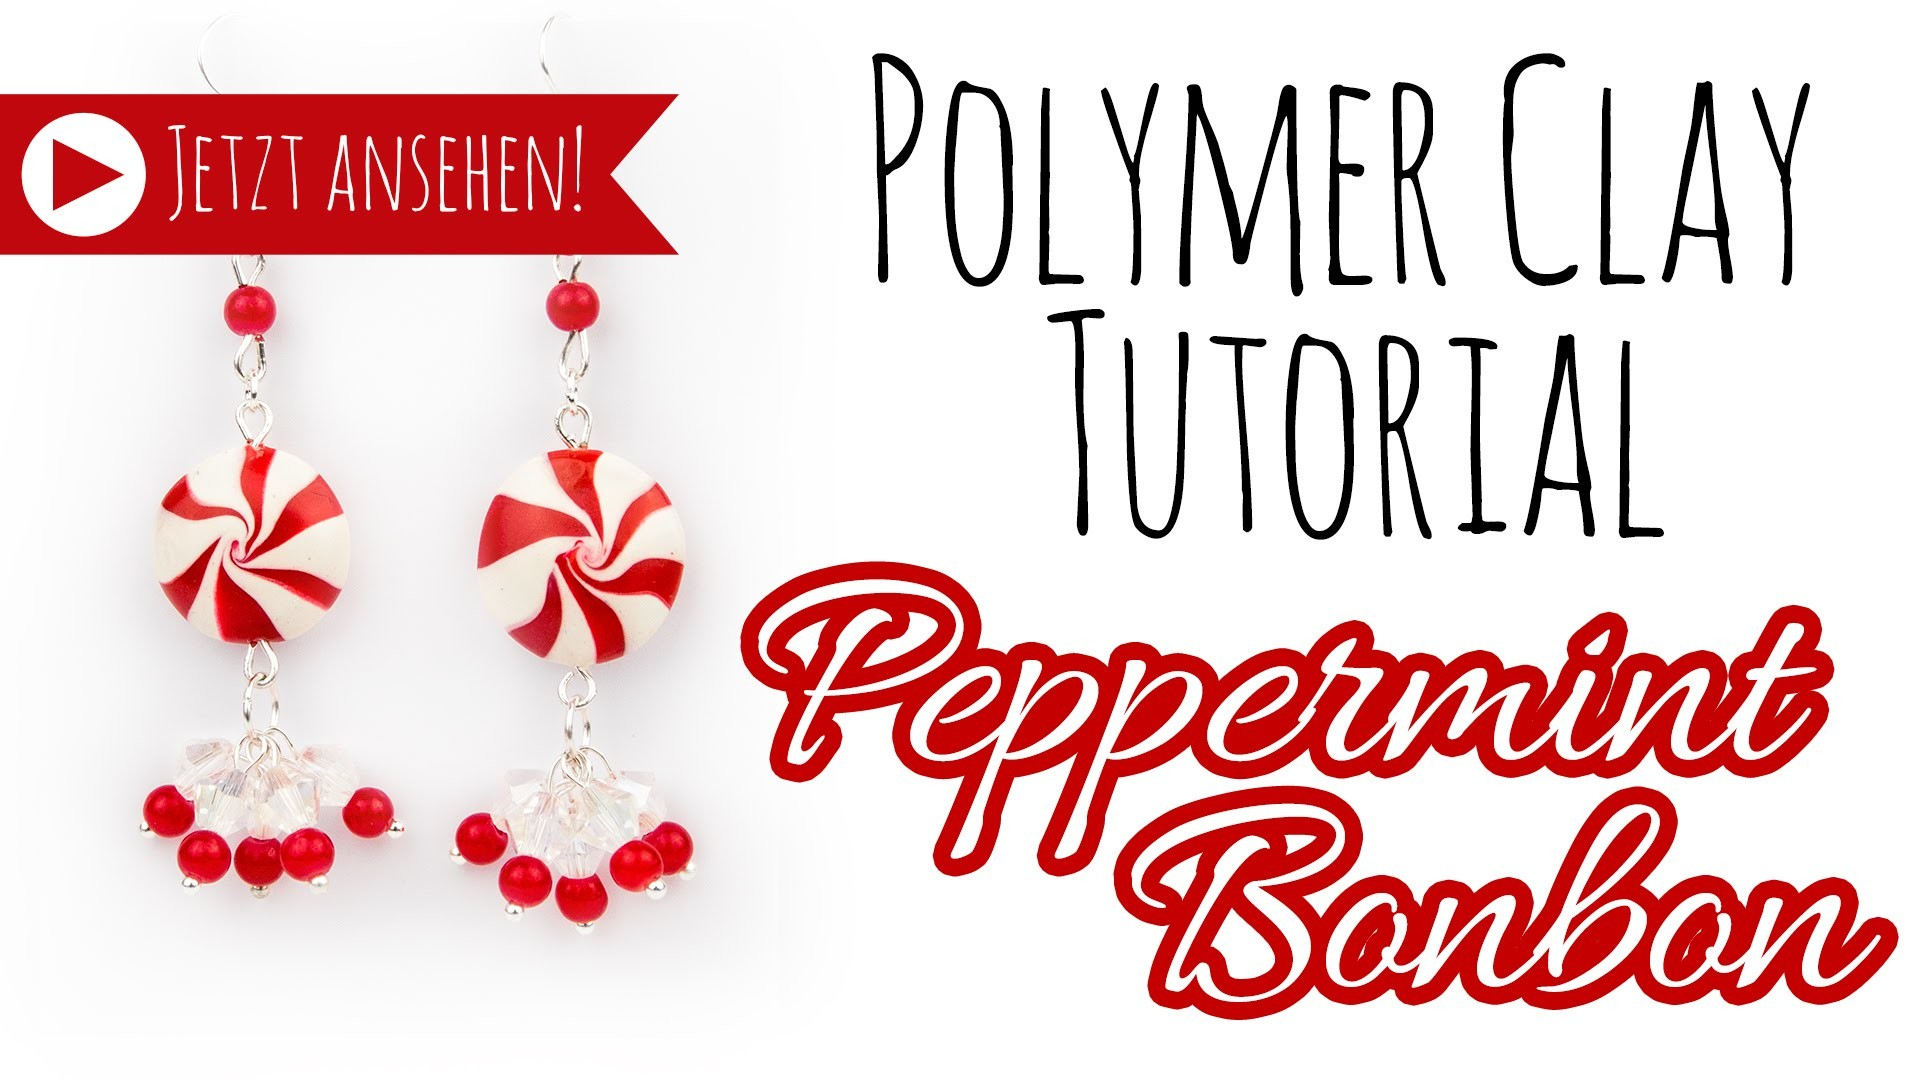 [PolymerClay Tutorial | Einfach] Pfefferminz Bonbon Ohrringe